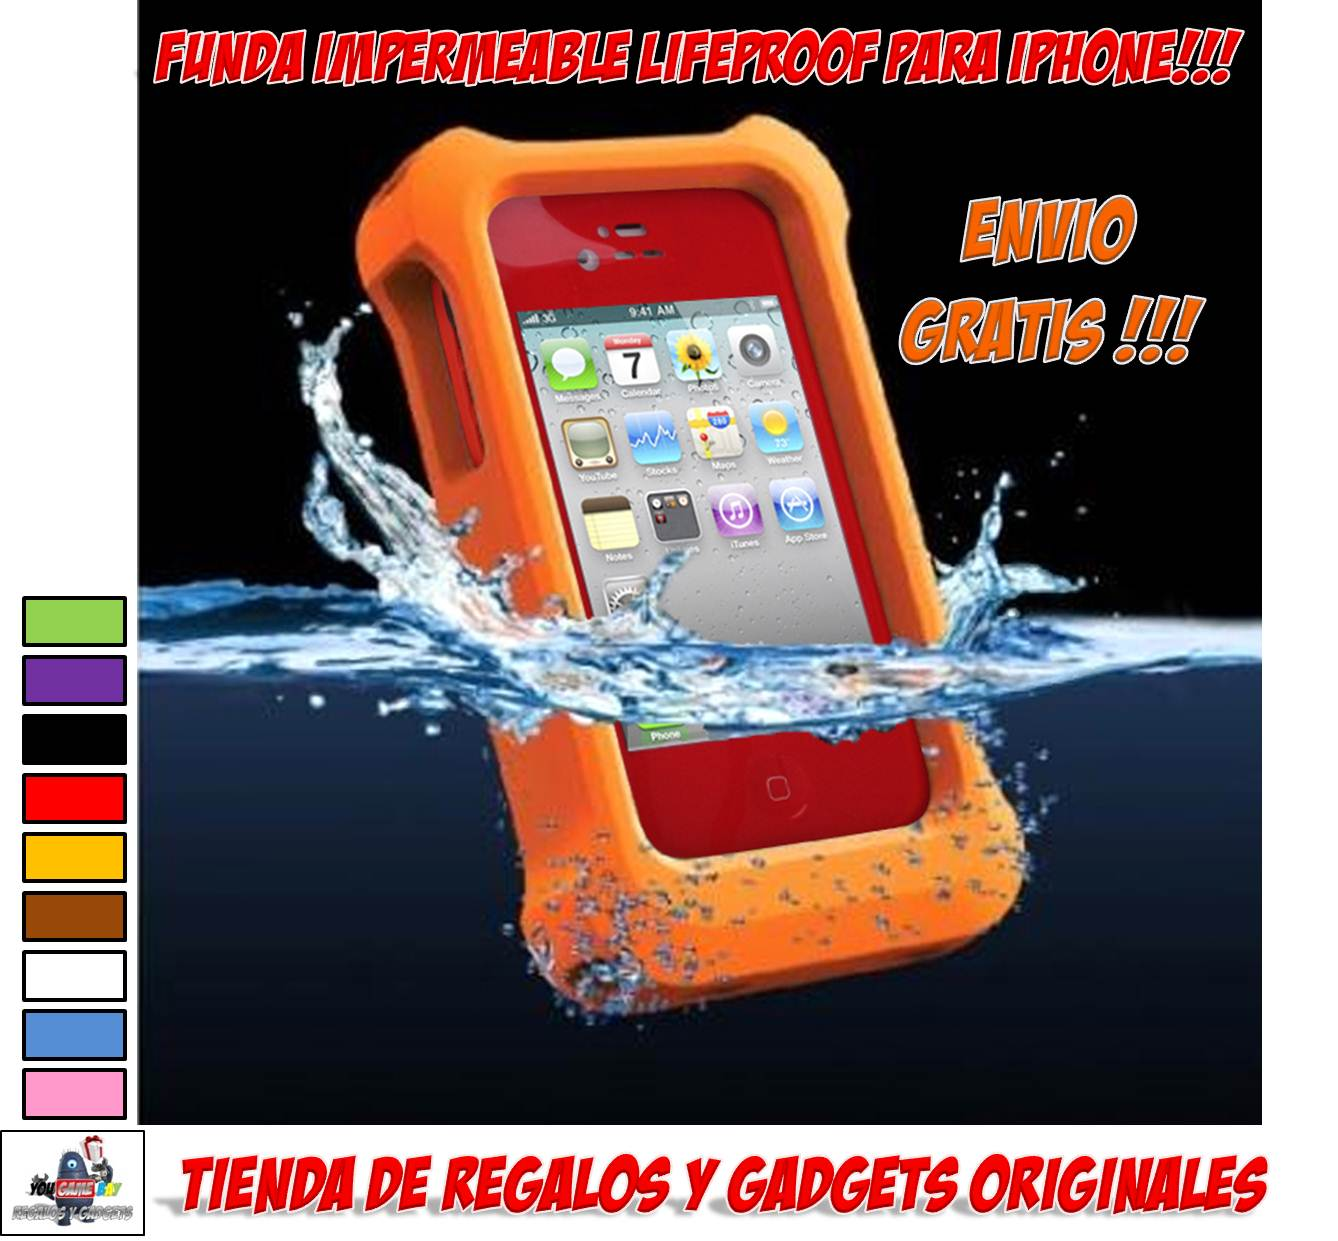 Regalos y gadgets originales y baratos fundas y carcasas impermeables para moviles funda - Fundas iphone 5 divertidas ...